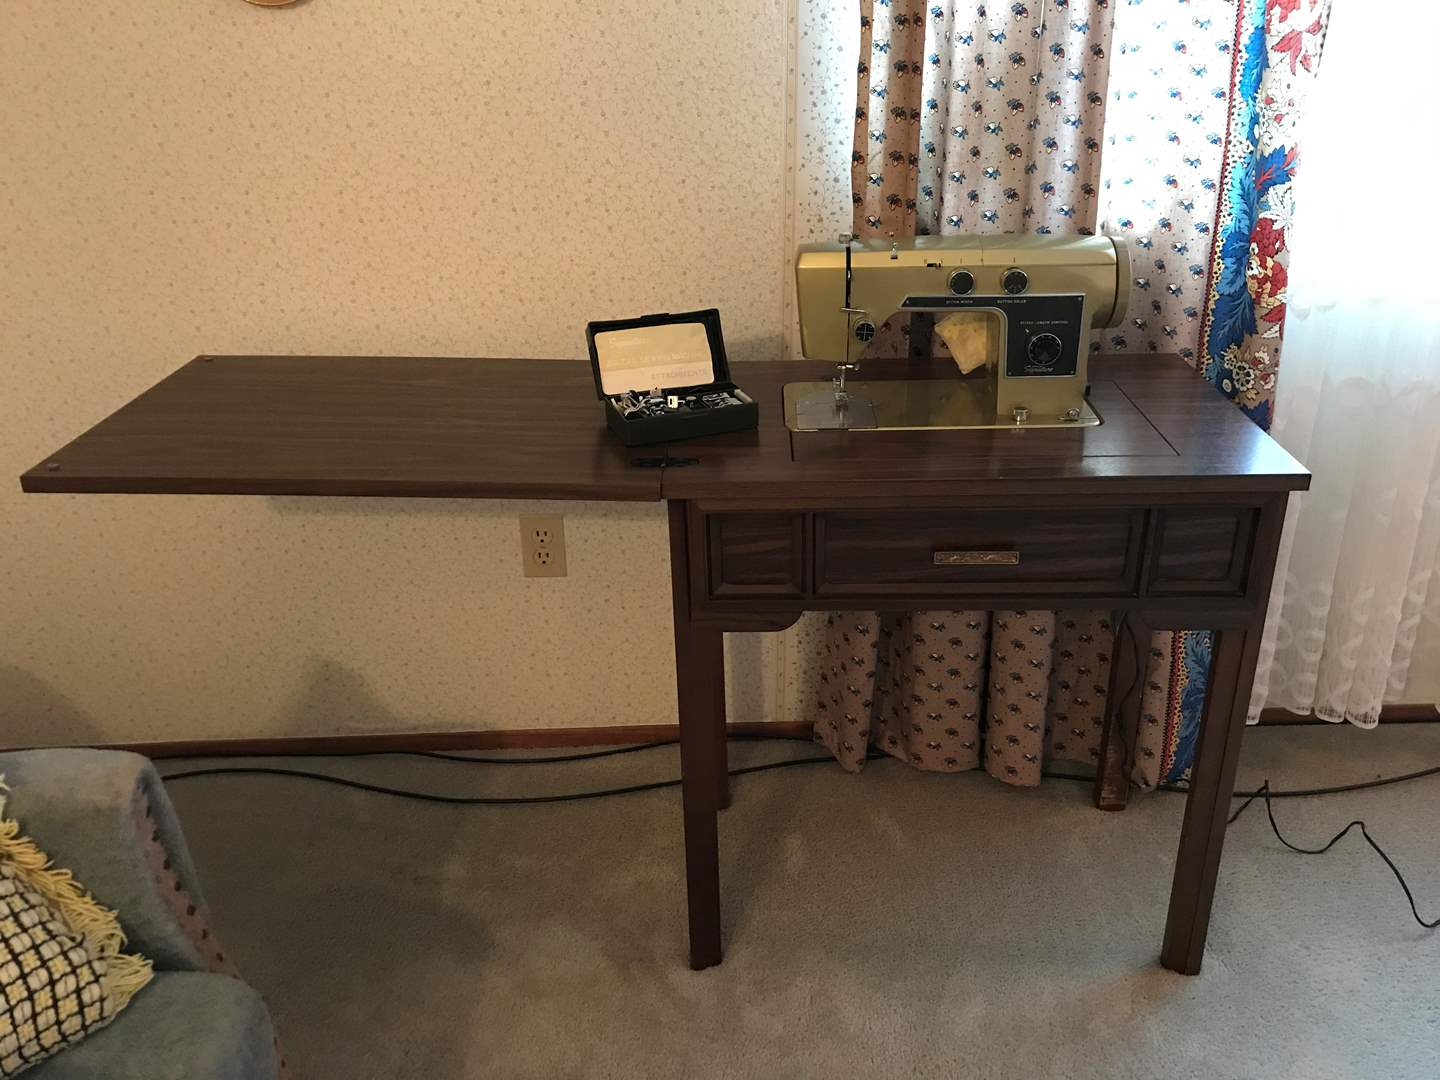 Lot # 100 - Vintage Wards Signature Sewing Machine w/Attachments in Wood Cabinet - Tested, Works (main image)